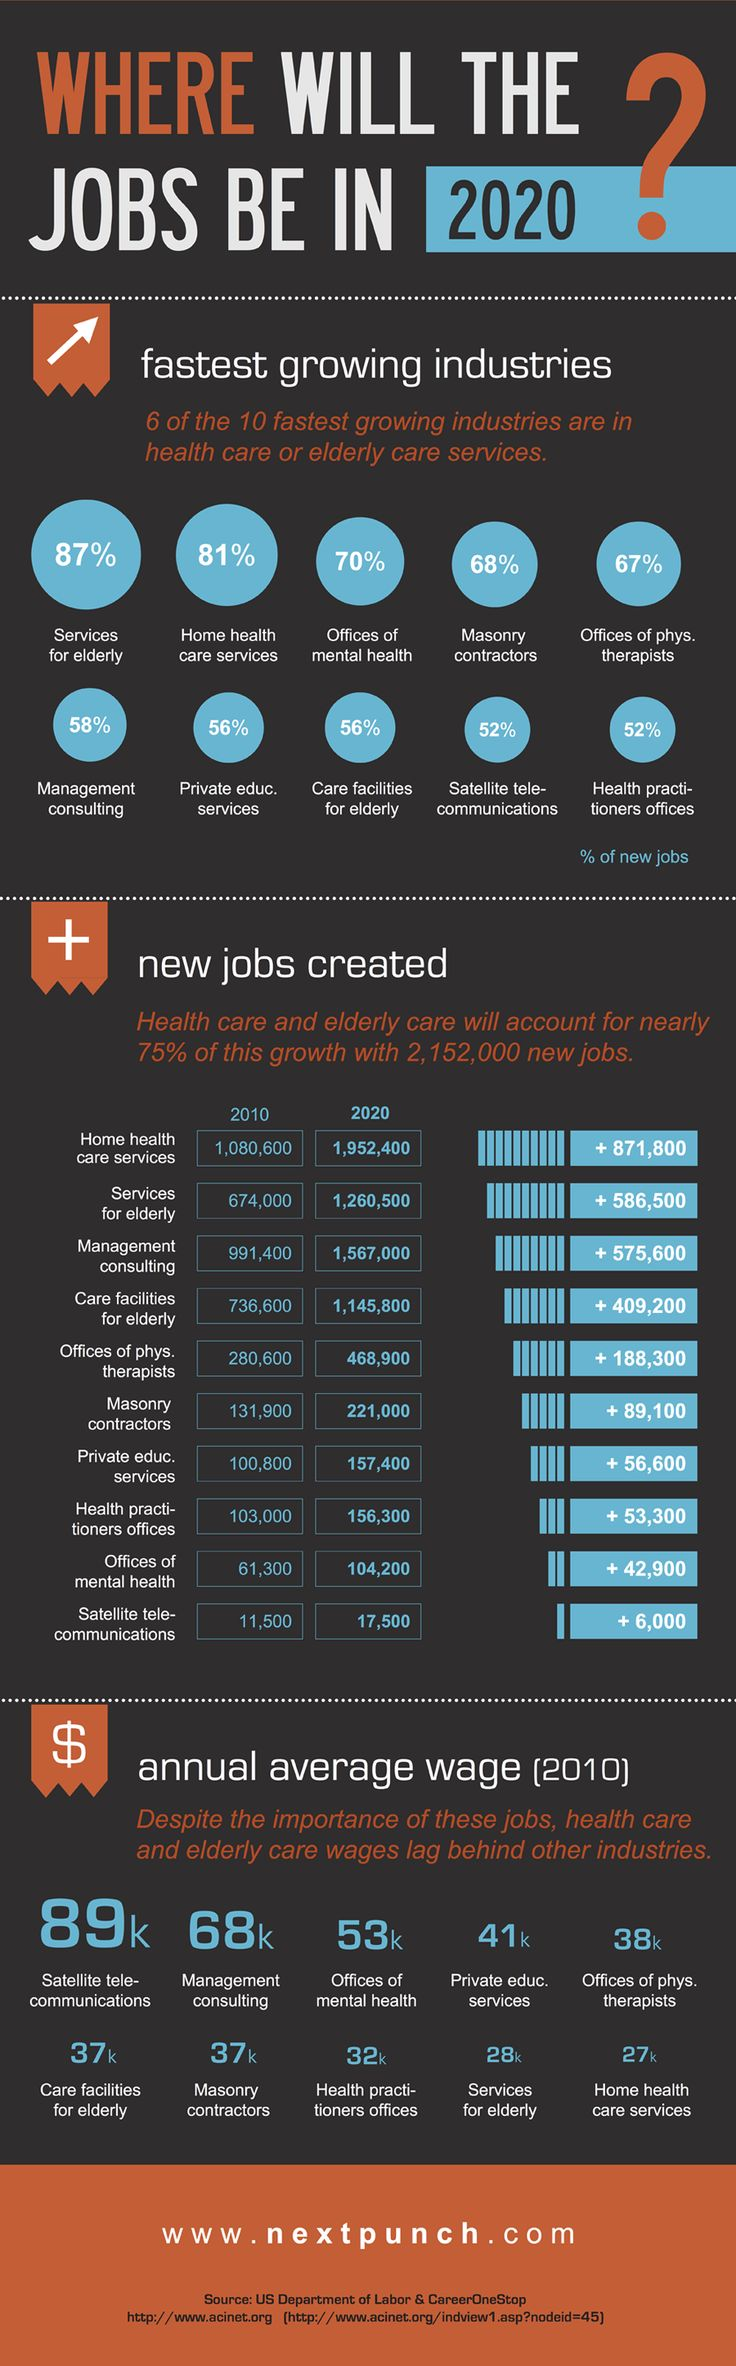 Where will jobs be in 2020?